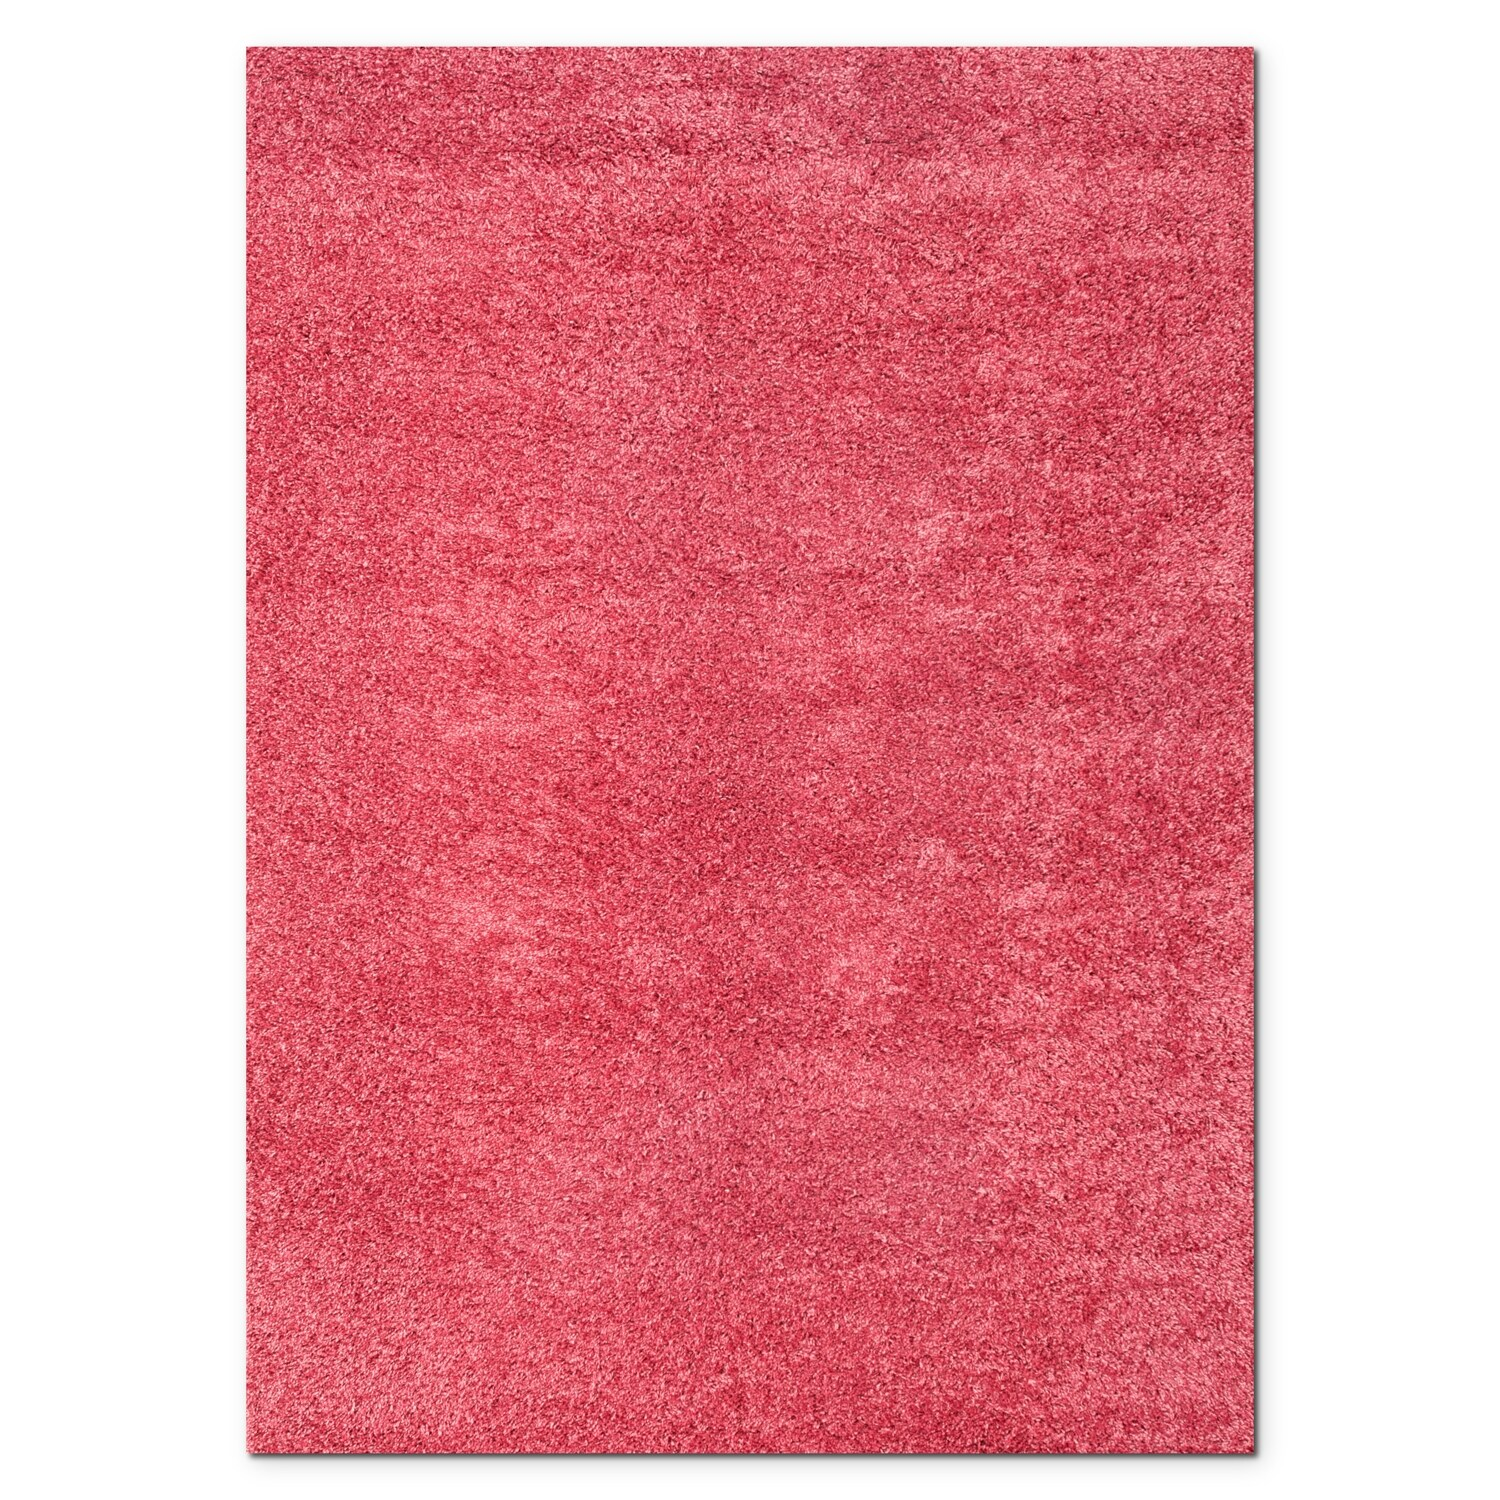 Rugs - Domino Shag 8' x 10' Area Rug - Pink